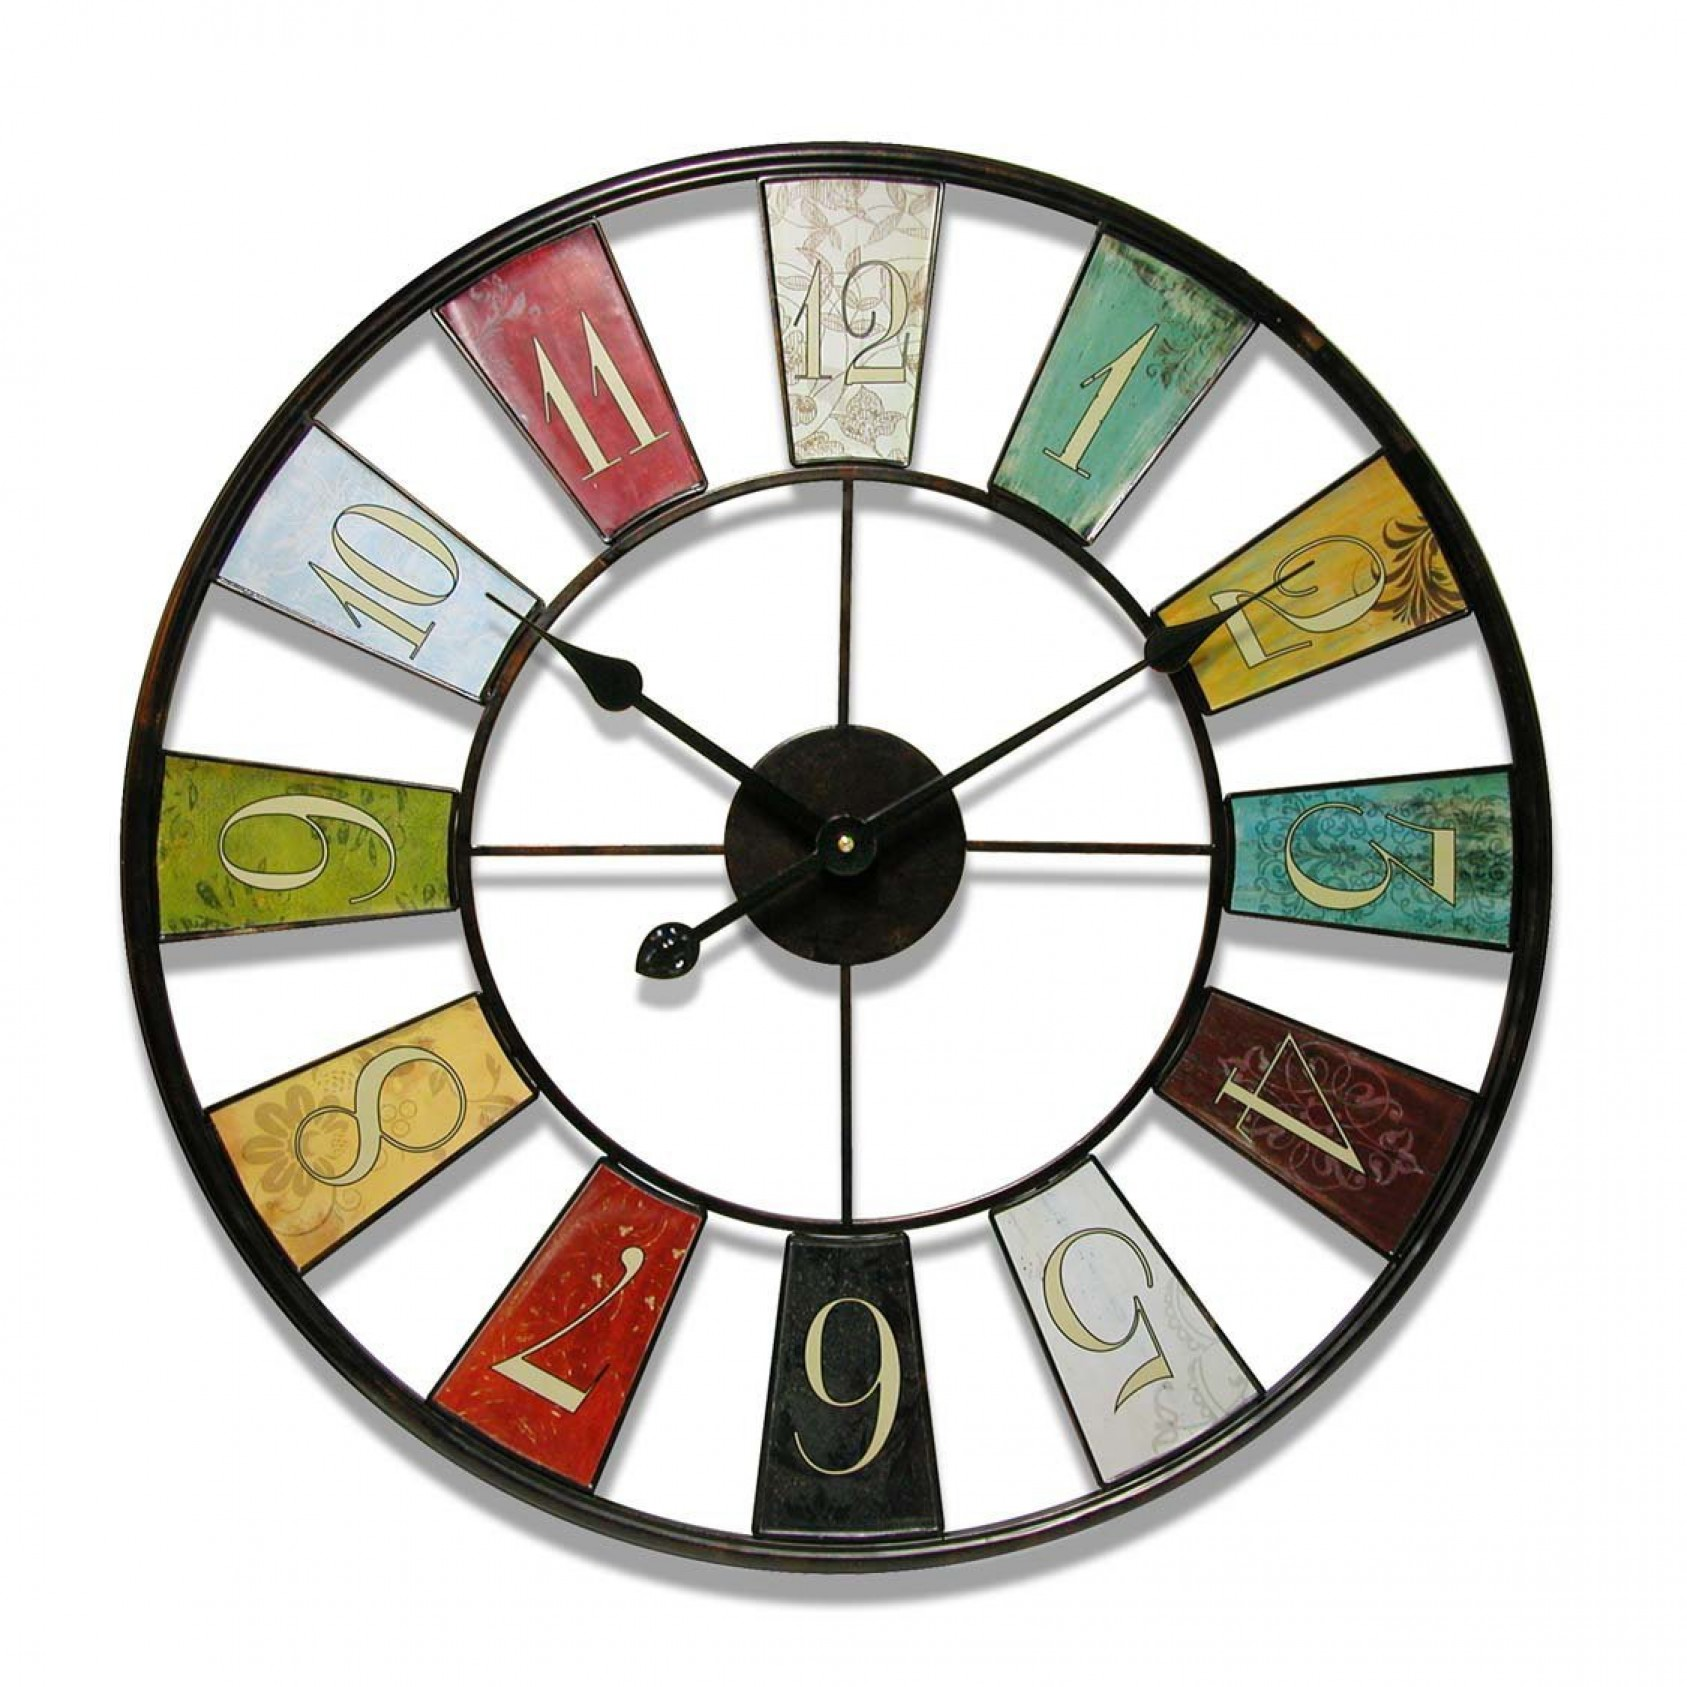 Best vintage kaleidoscope wall clock bedroom office watch decor image is loading best vintage kaleidoscope wall clock bedroom office watch amipublicfo Images